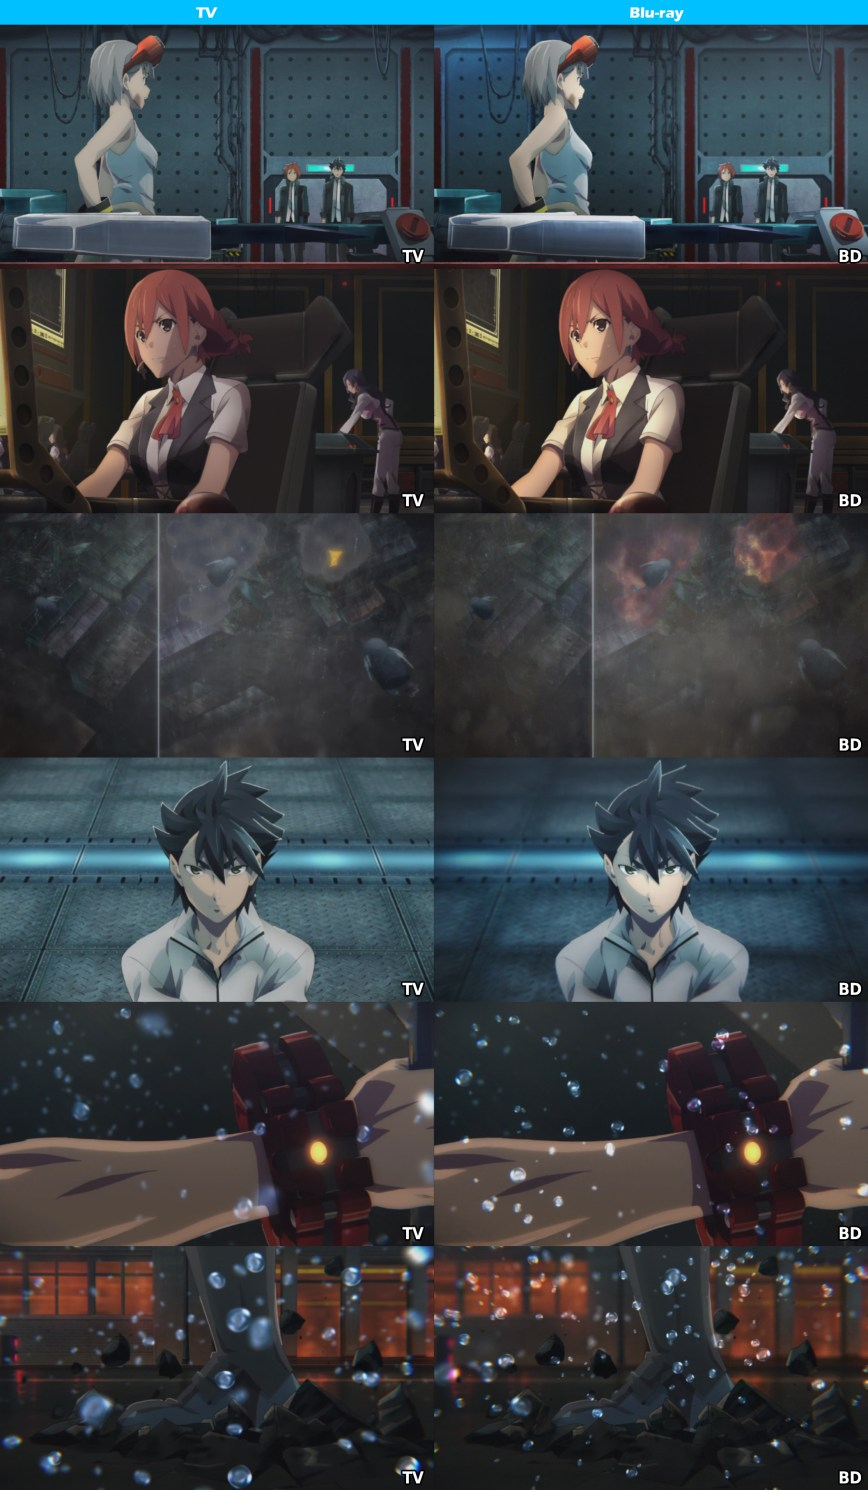 God-Eater-Anime-TV-and-Blu-ray-Comparison-3